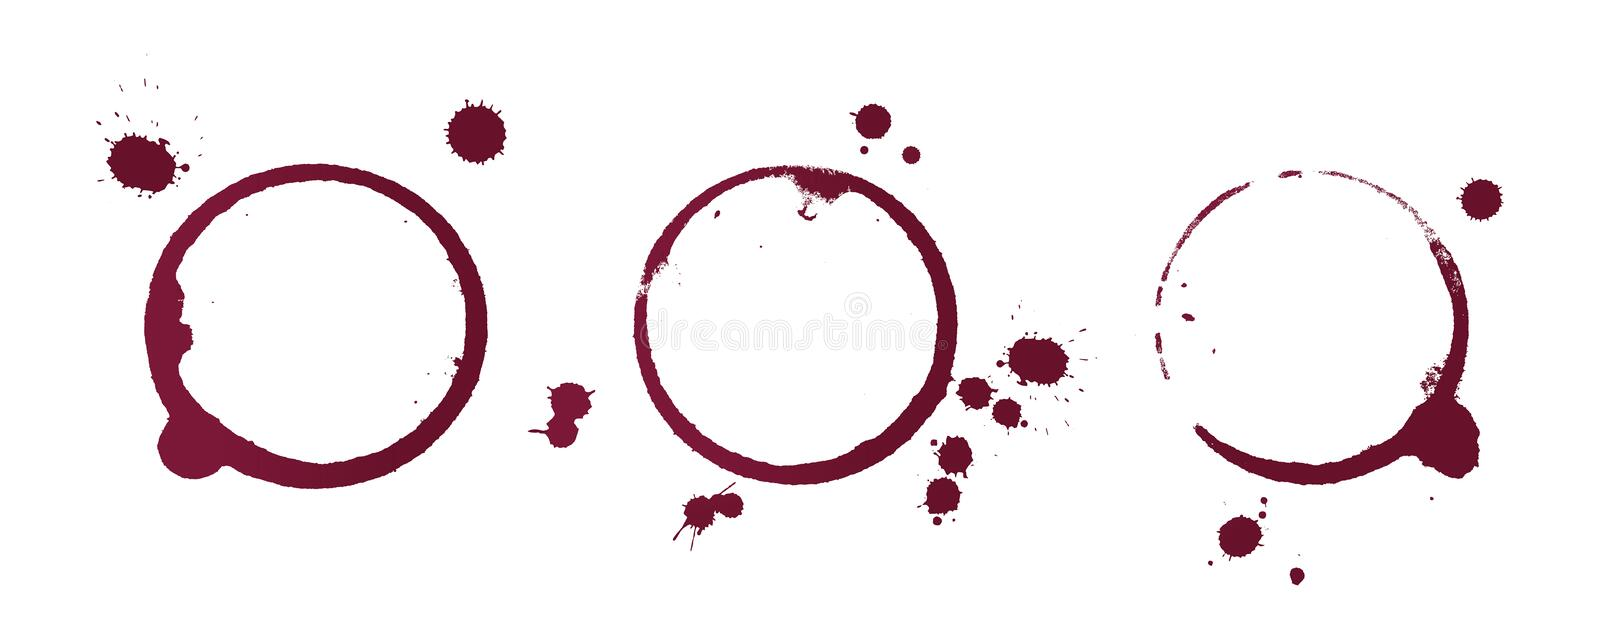 Red wine stain rings isolated on white background stock image